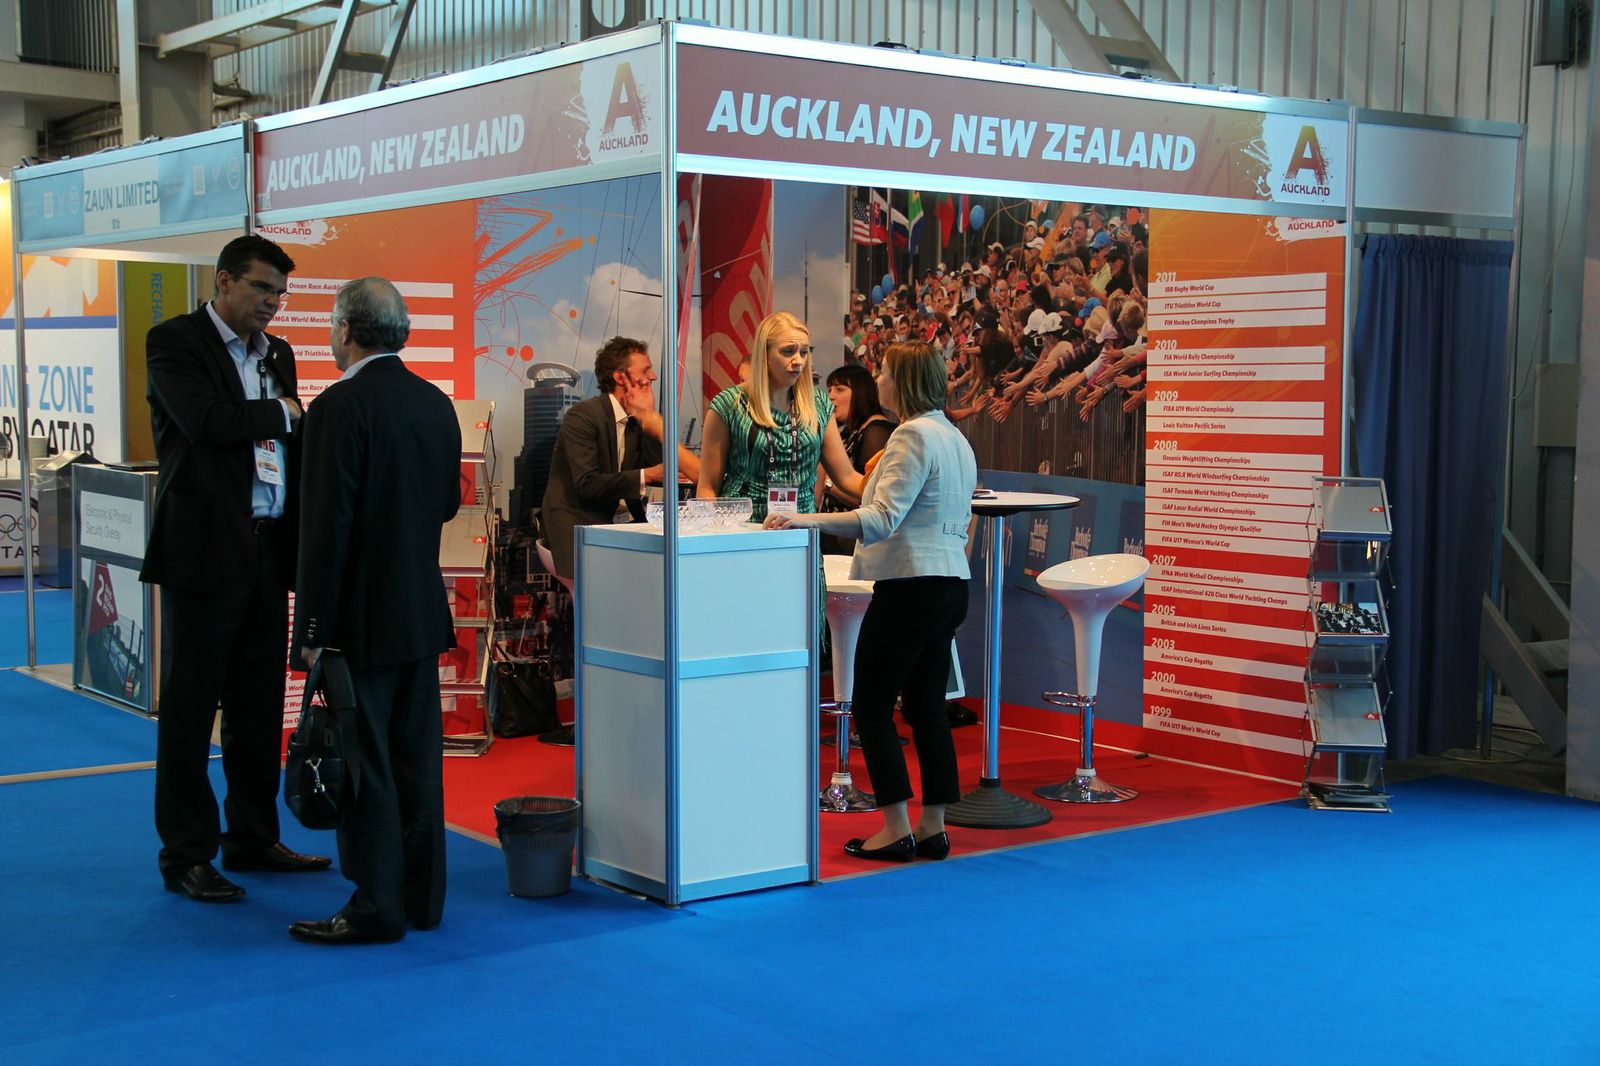 The Auckland, New Zealand Exhibition stand, SportAccord International Convention 2013 in Saint Petersburg, Russia